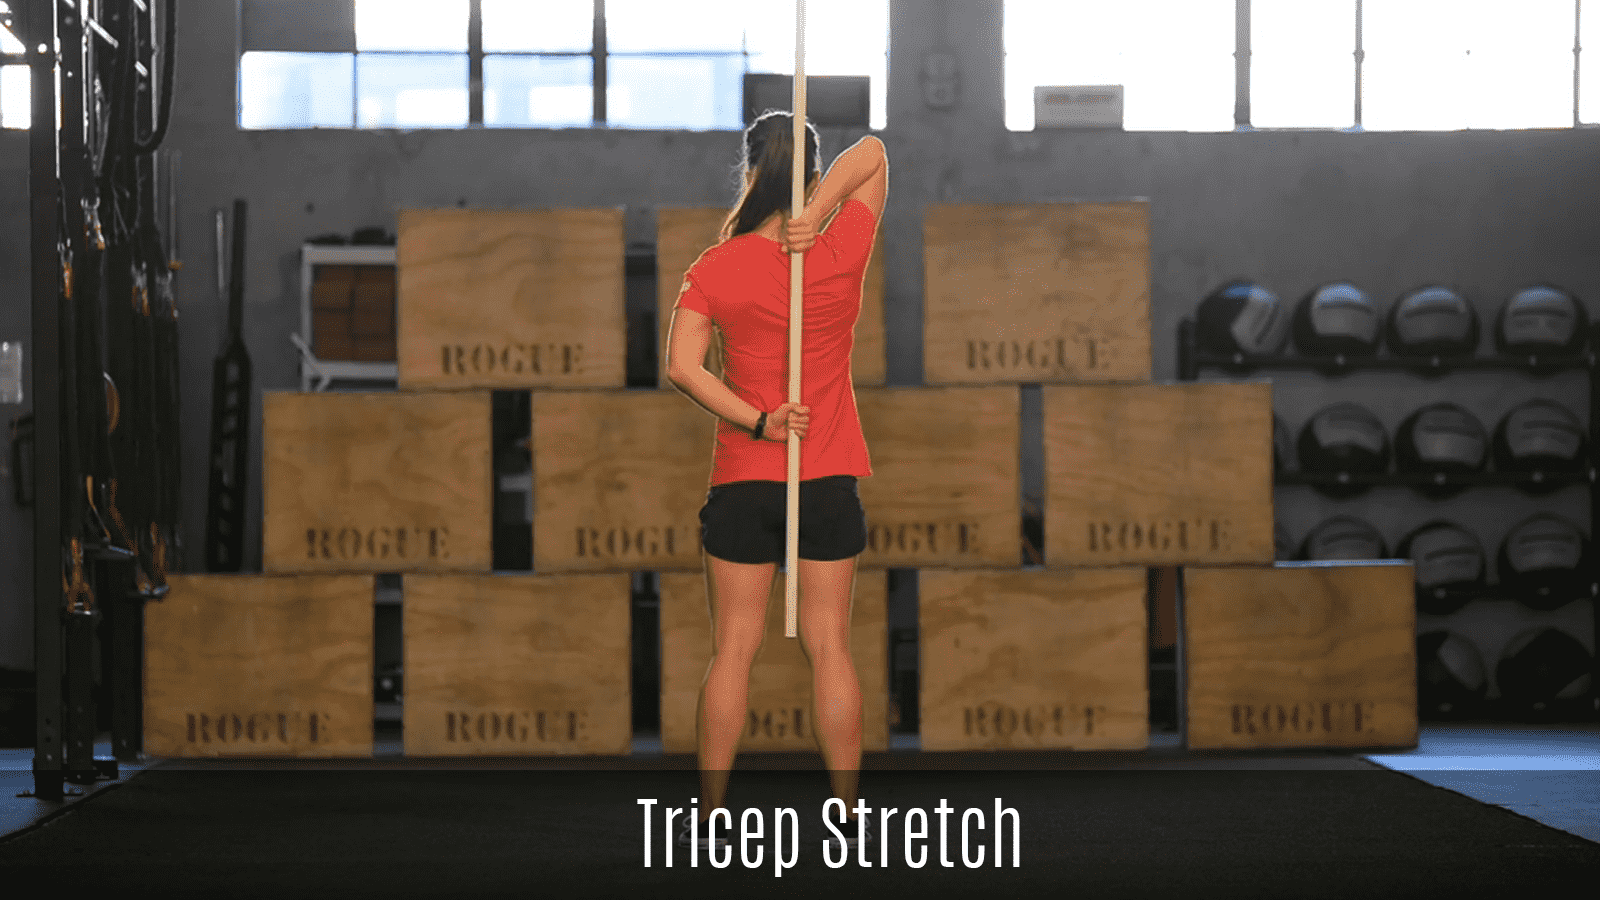 tricep stretch demo using pole